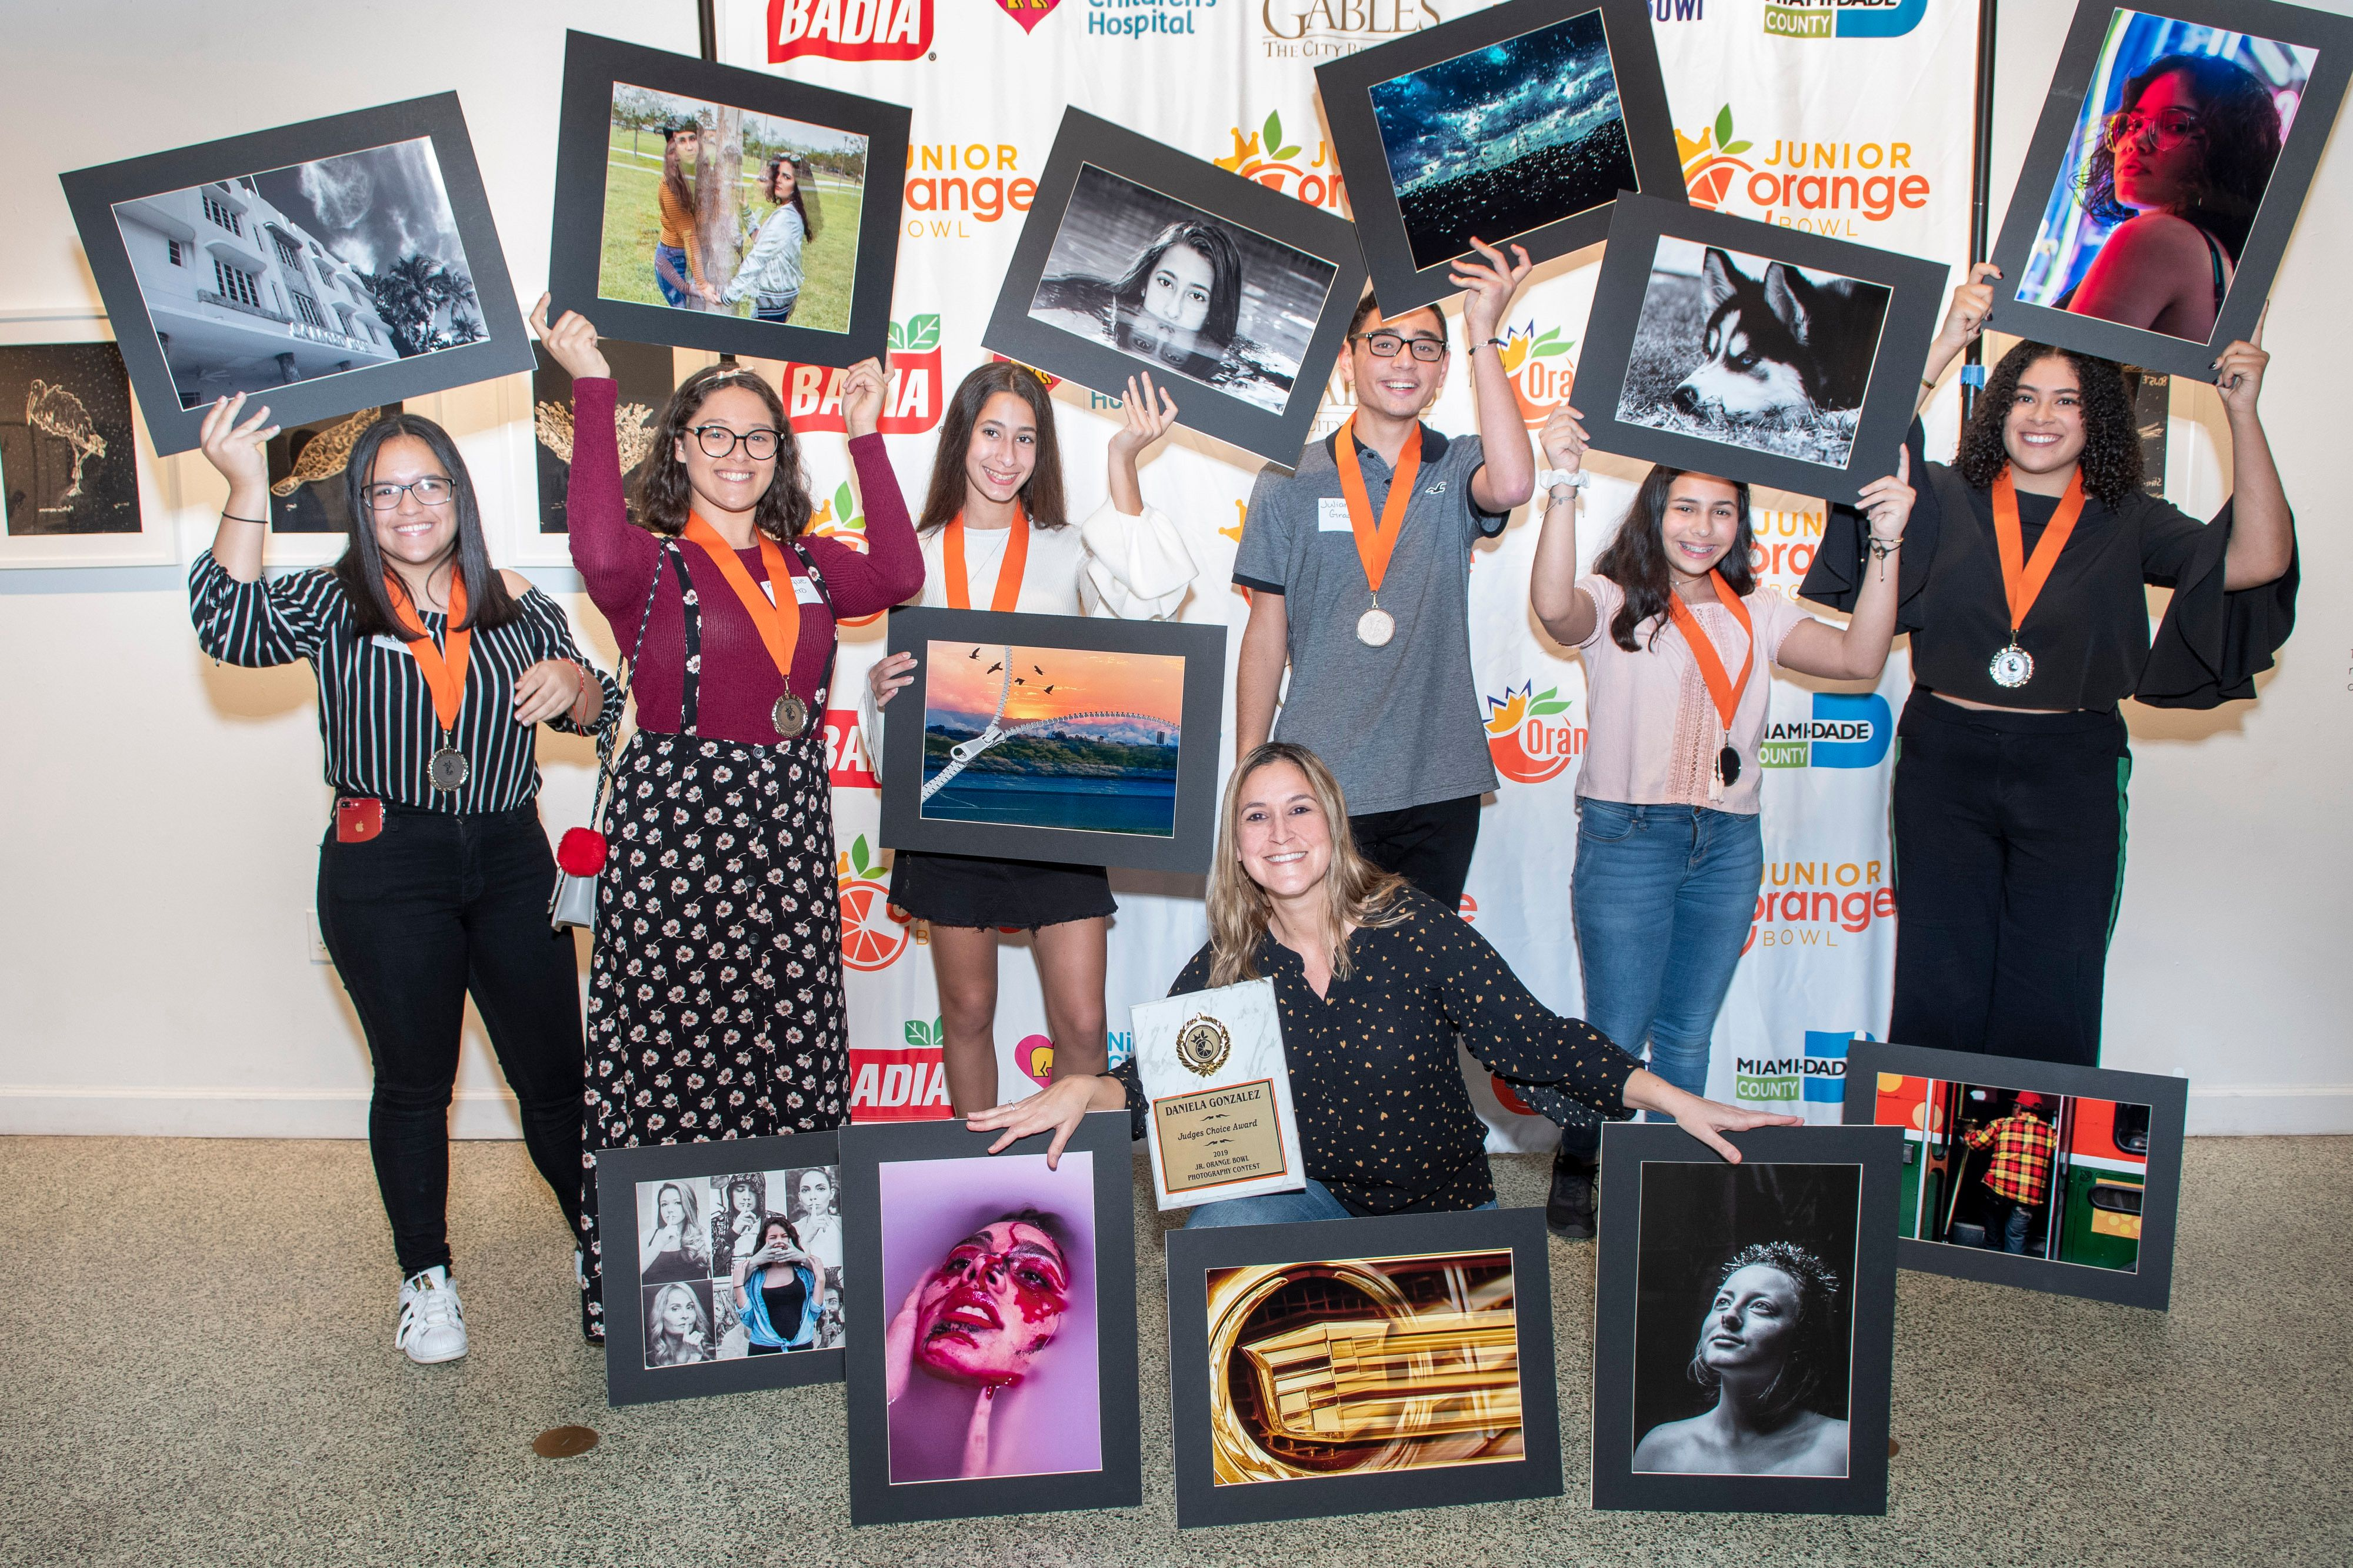 Junior Orange Bowl Photography Competition Awards Ceremony